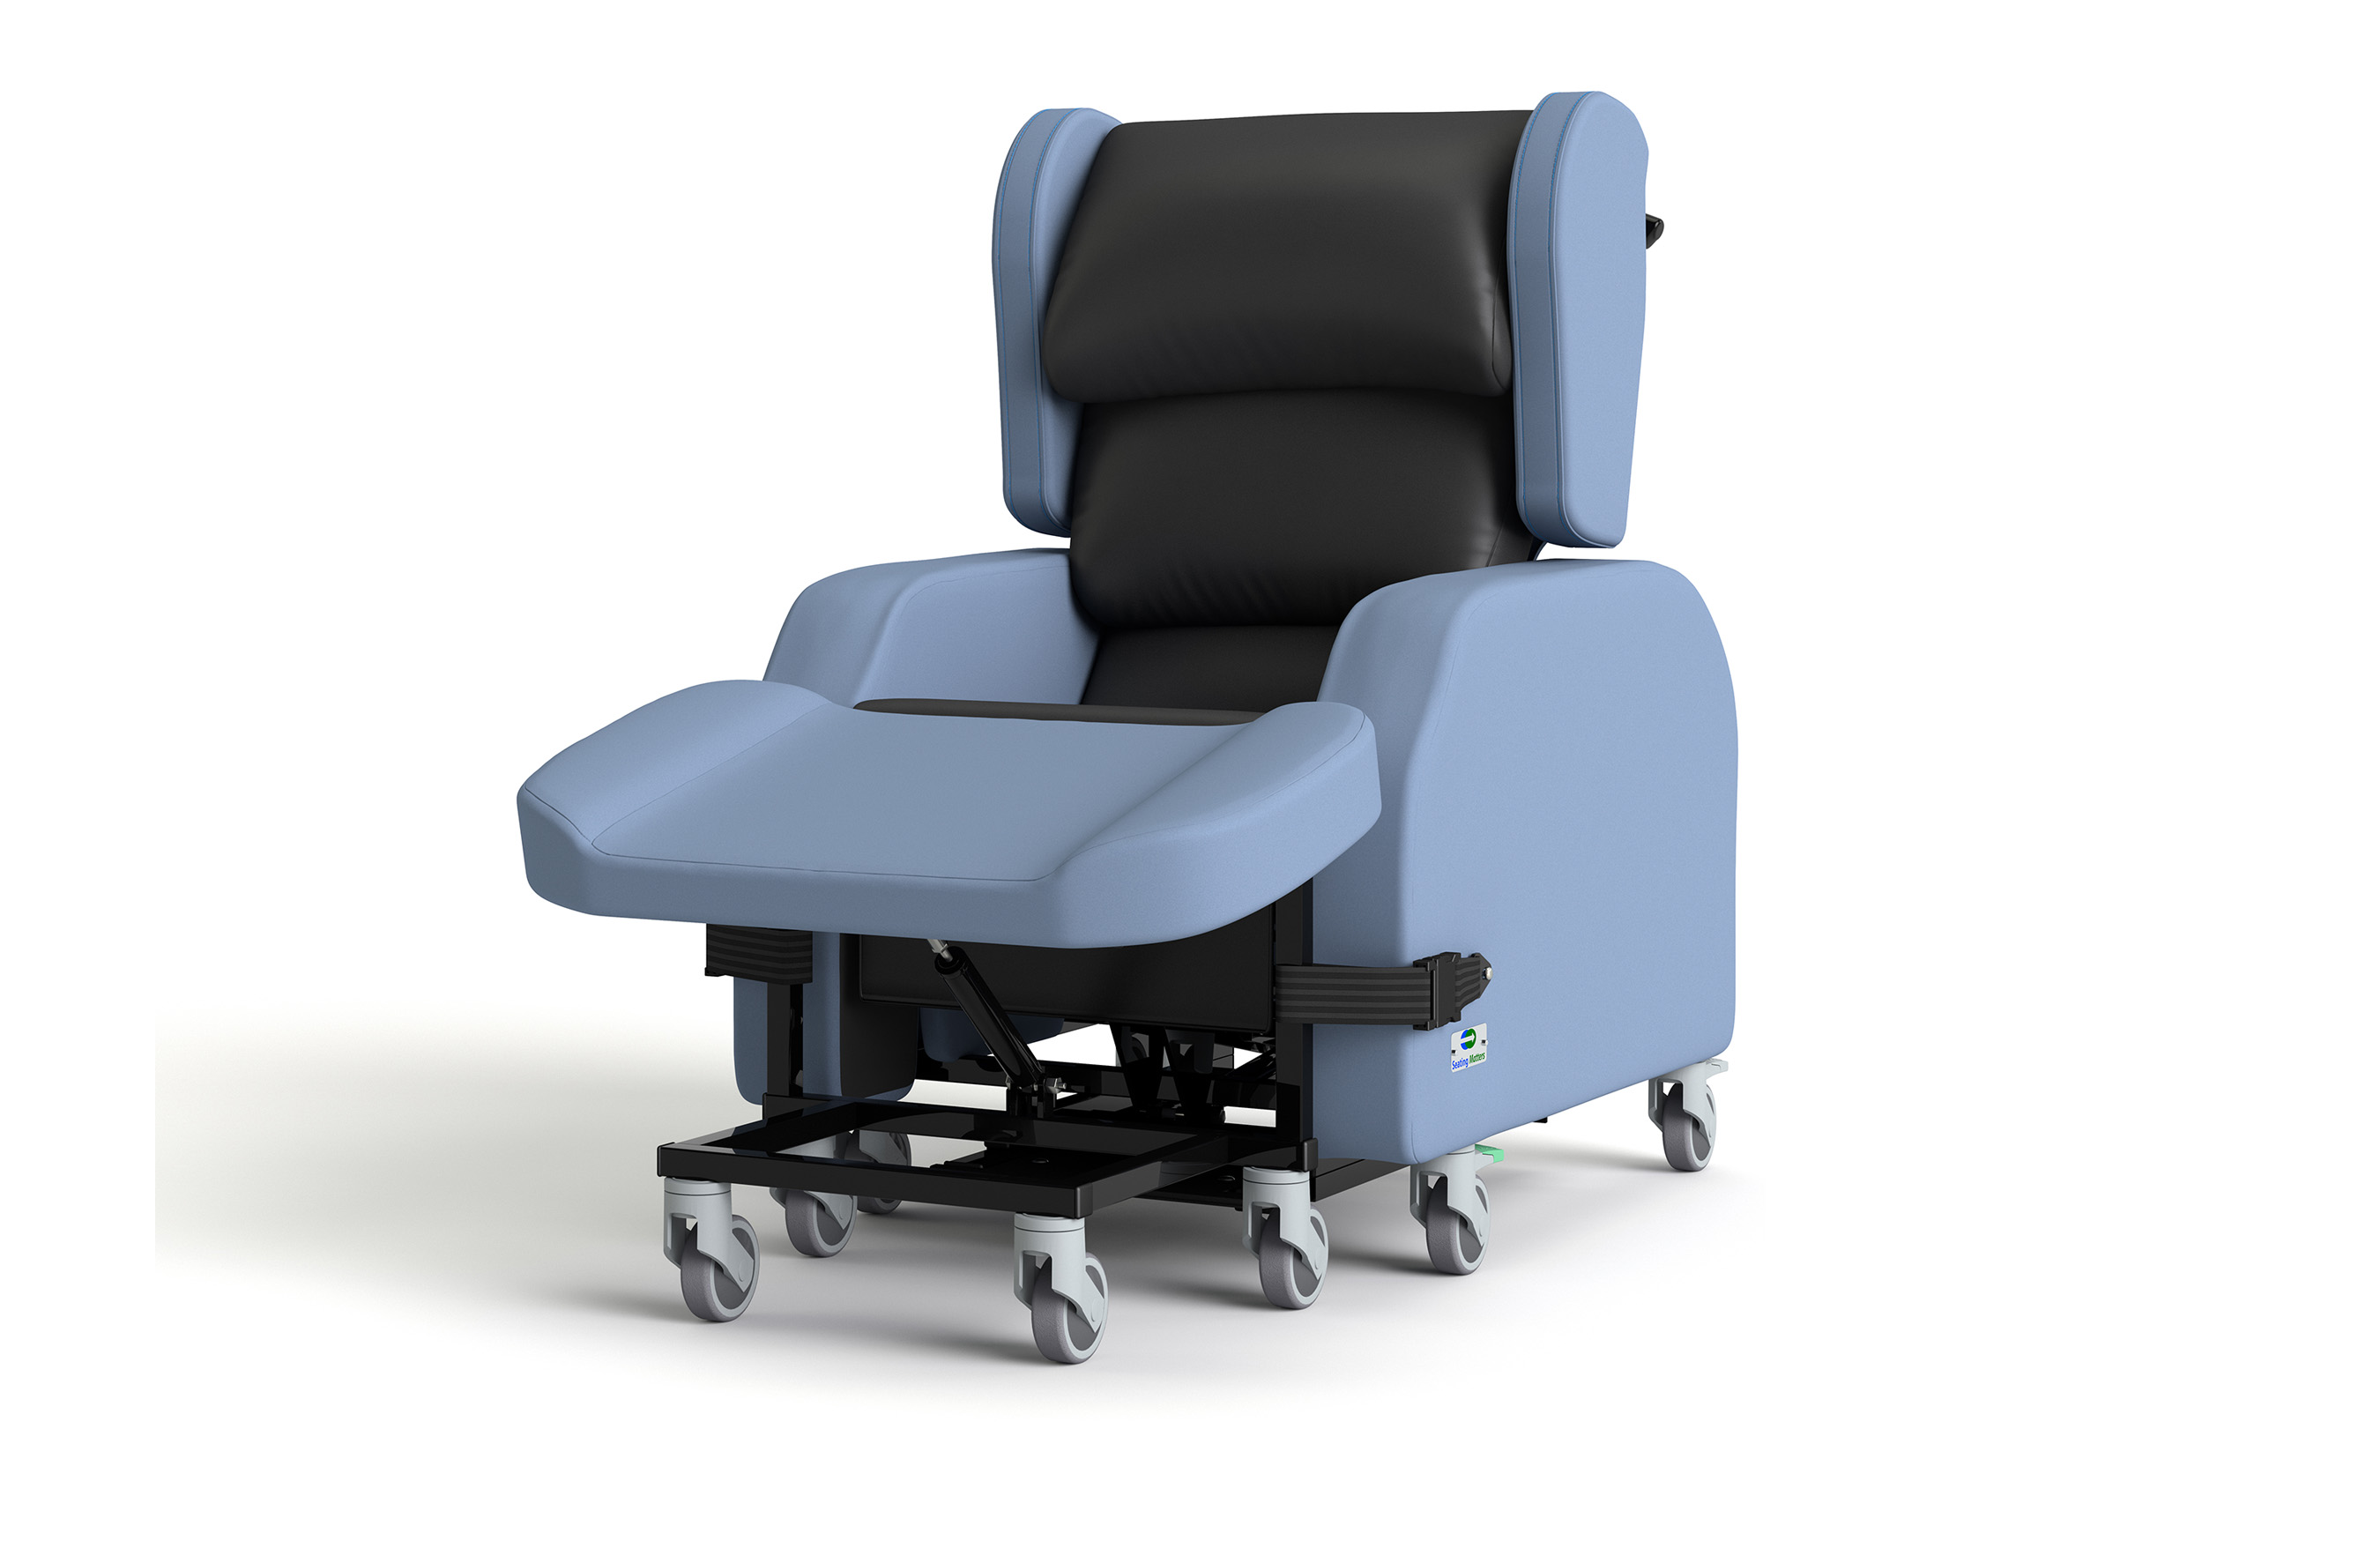 A robust and durable chair, Atlanta™ provides a safe and comfortable seat for those with vigorous involuntary movements. The Atlanta, designed for safety and security - with falls prevention in mind.